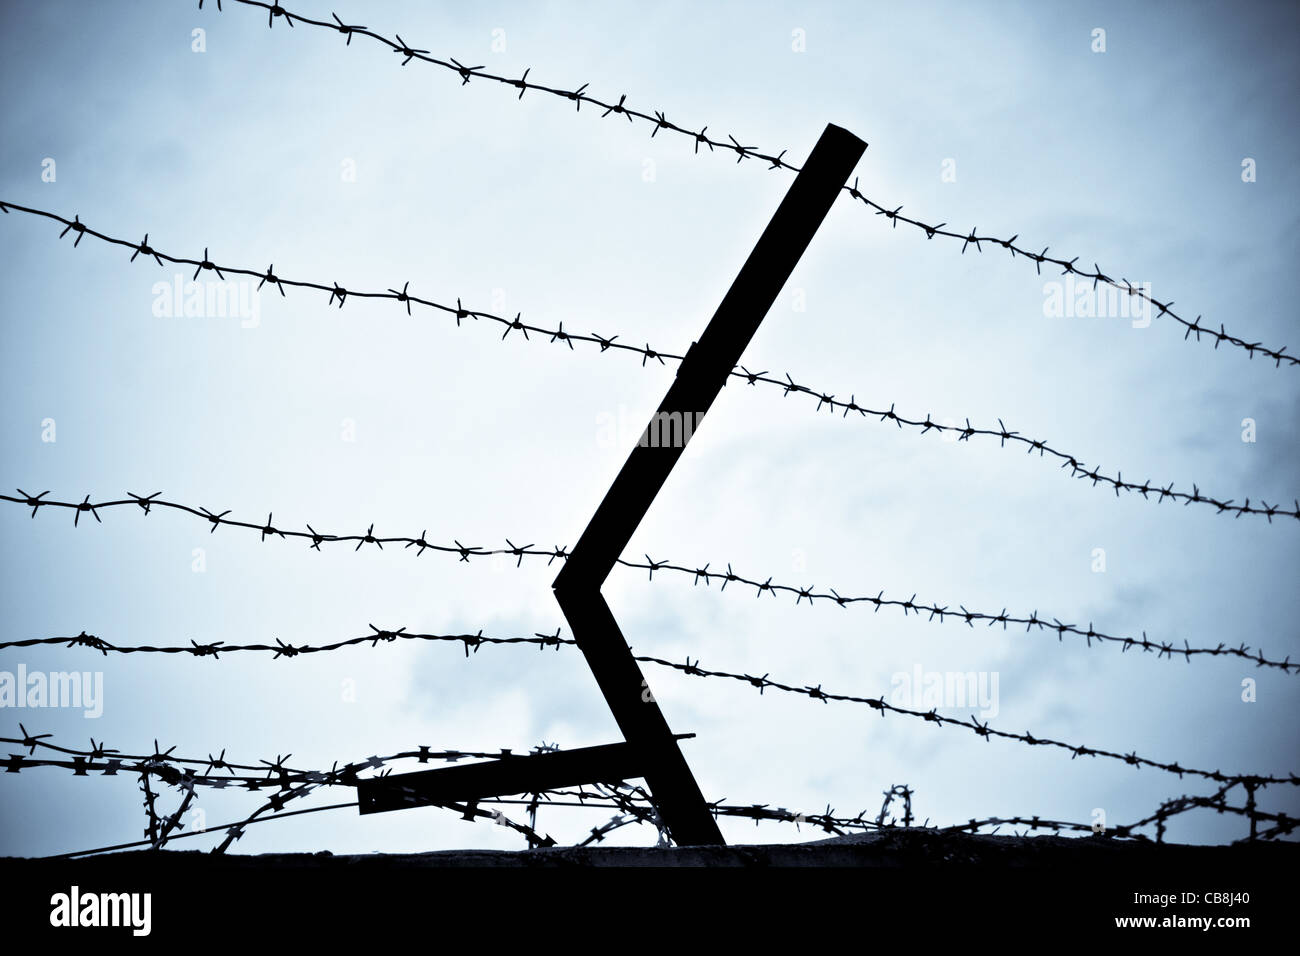 photo of old rusty barbed wire against sky Stock Photo